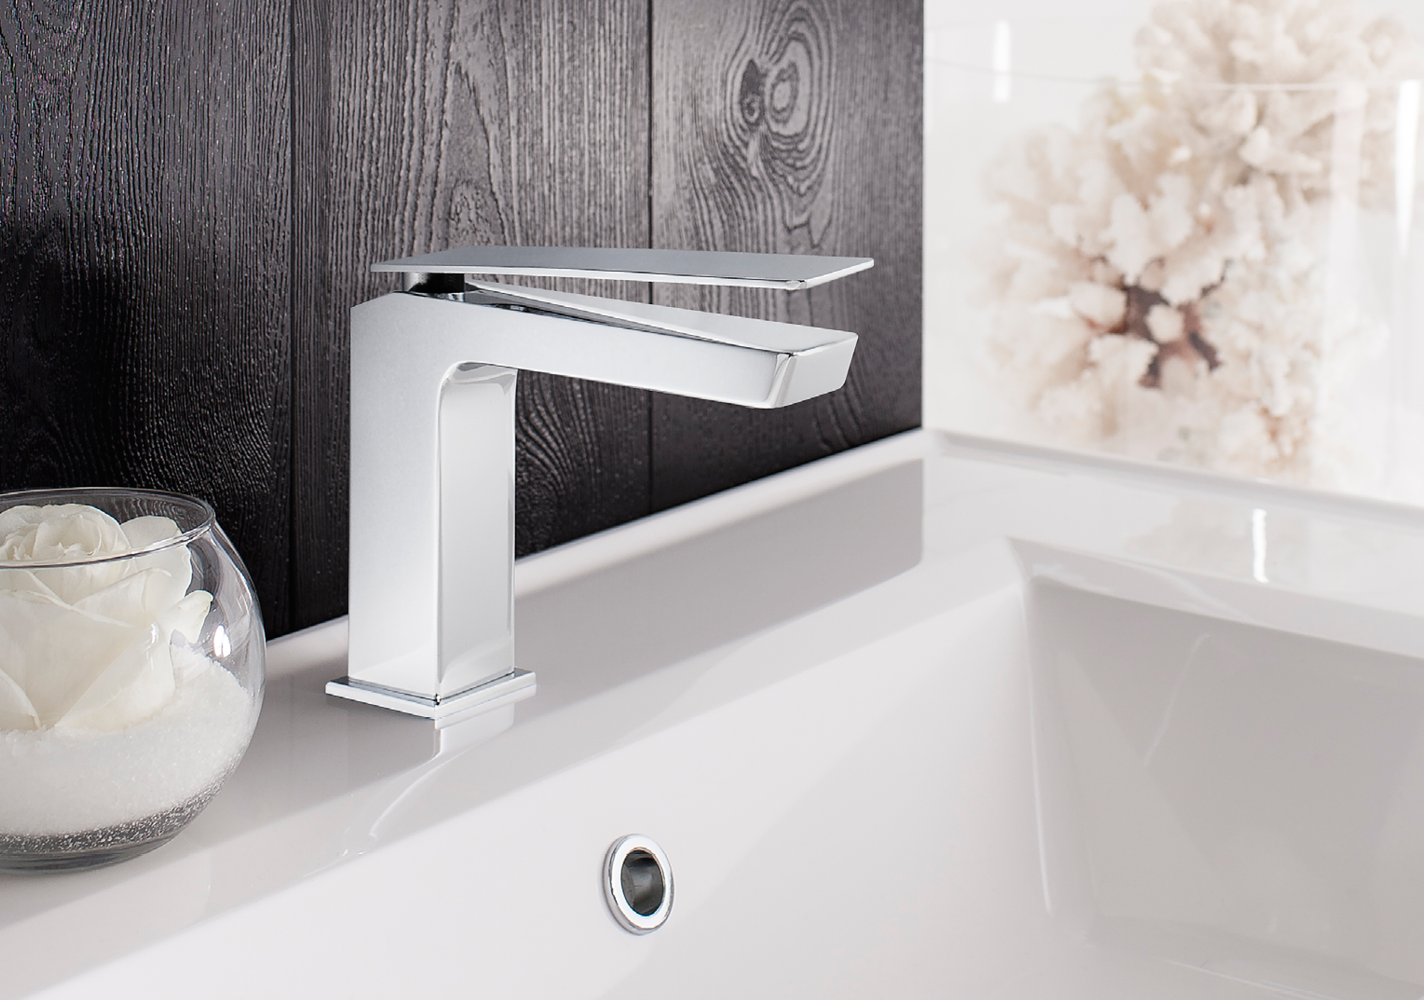 Bathroom tap designs - Bathroom Tap Designs 35